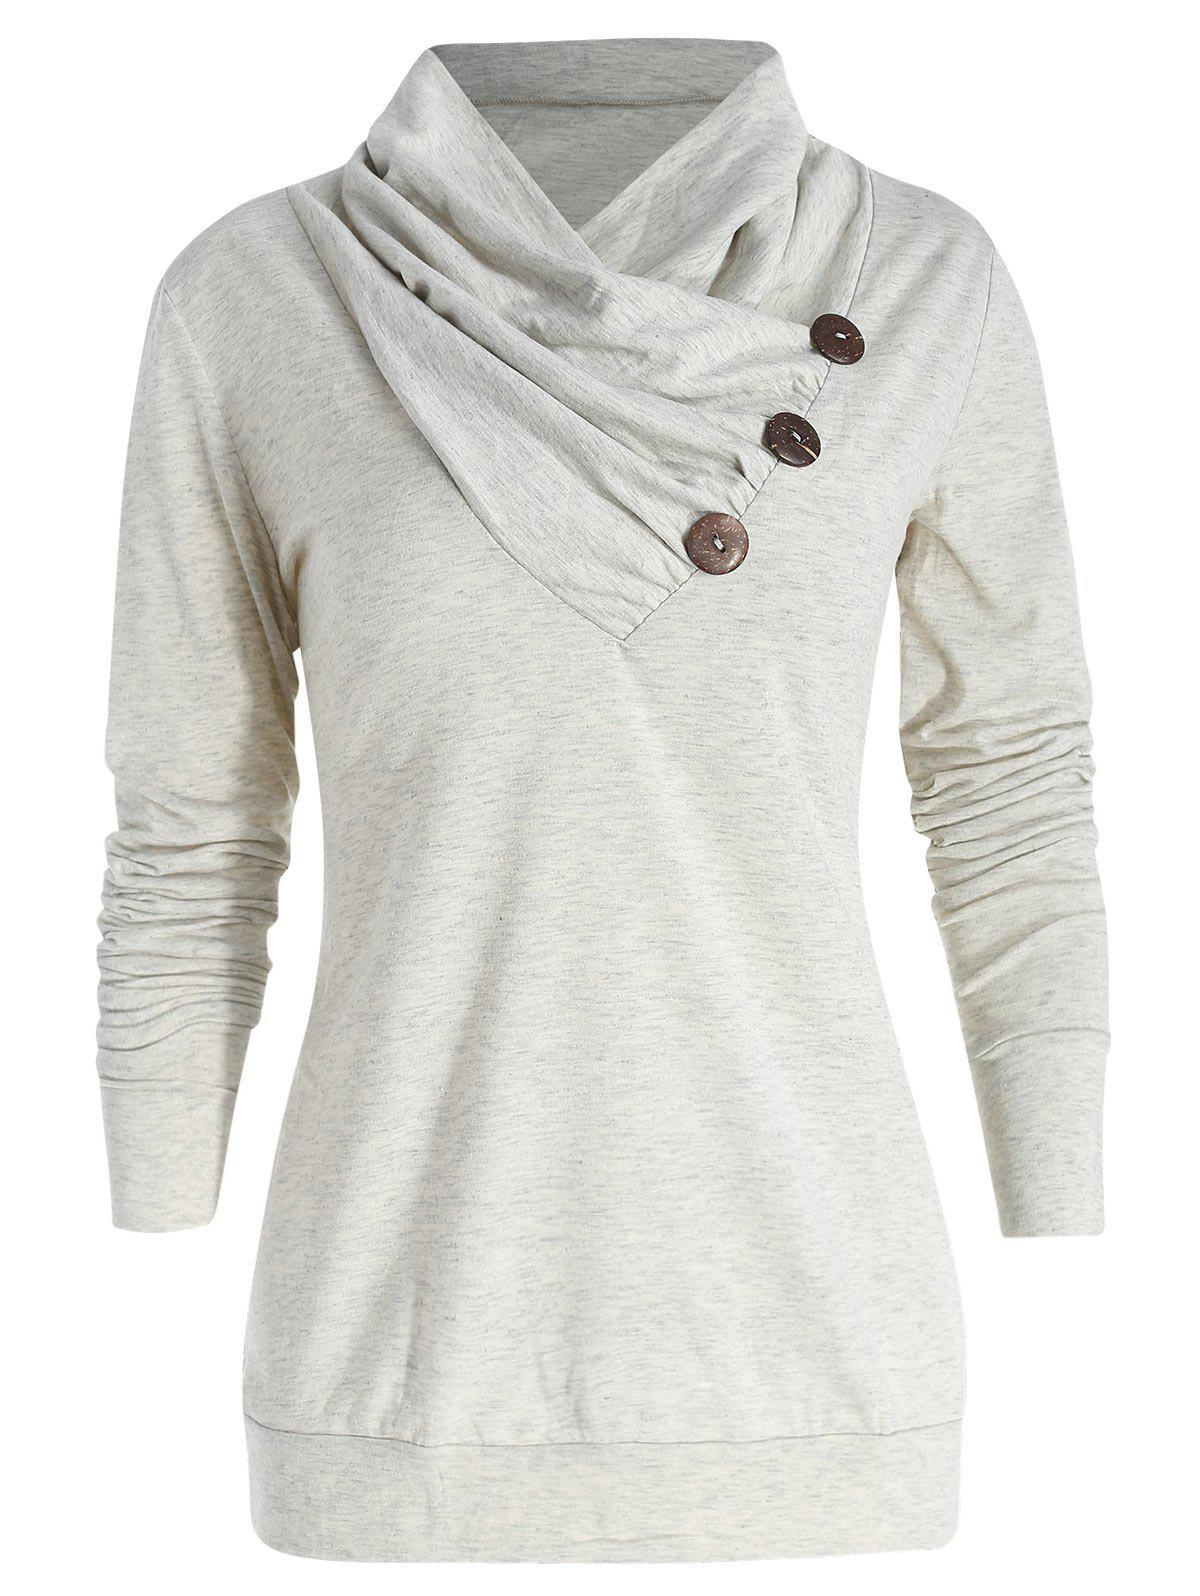 Discount Cowl Neck Button Embellished T Shirt